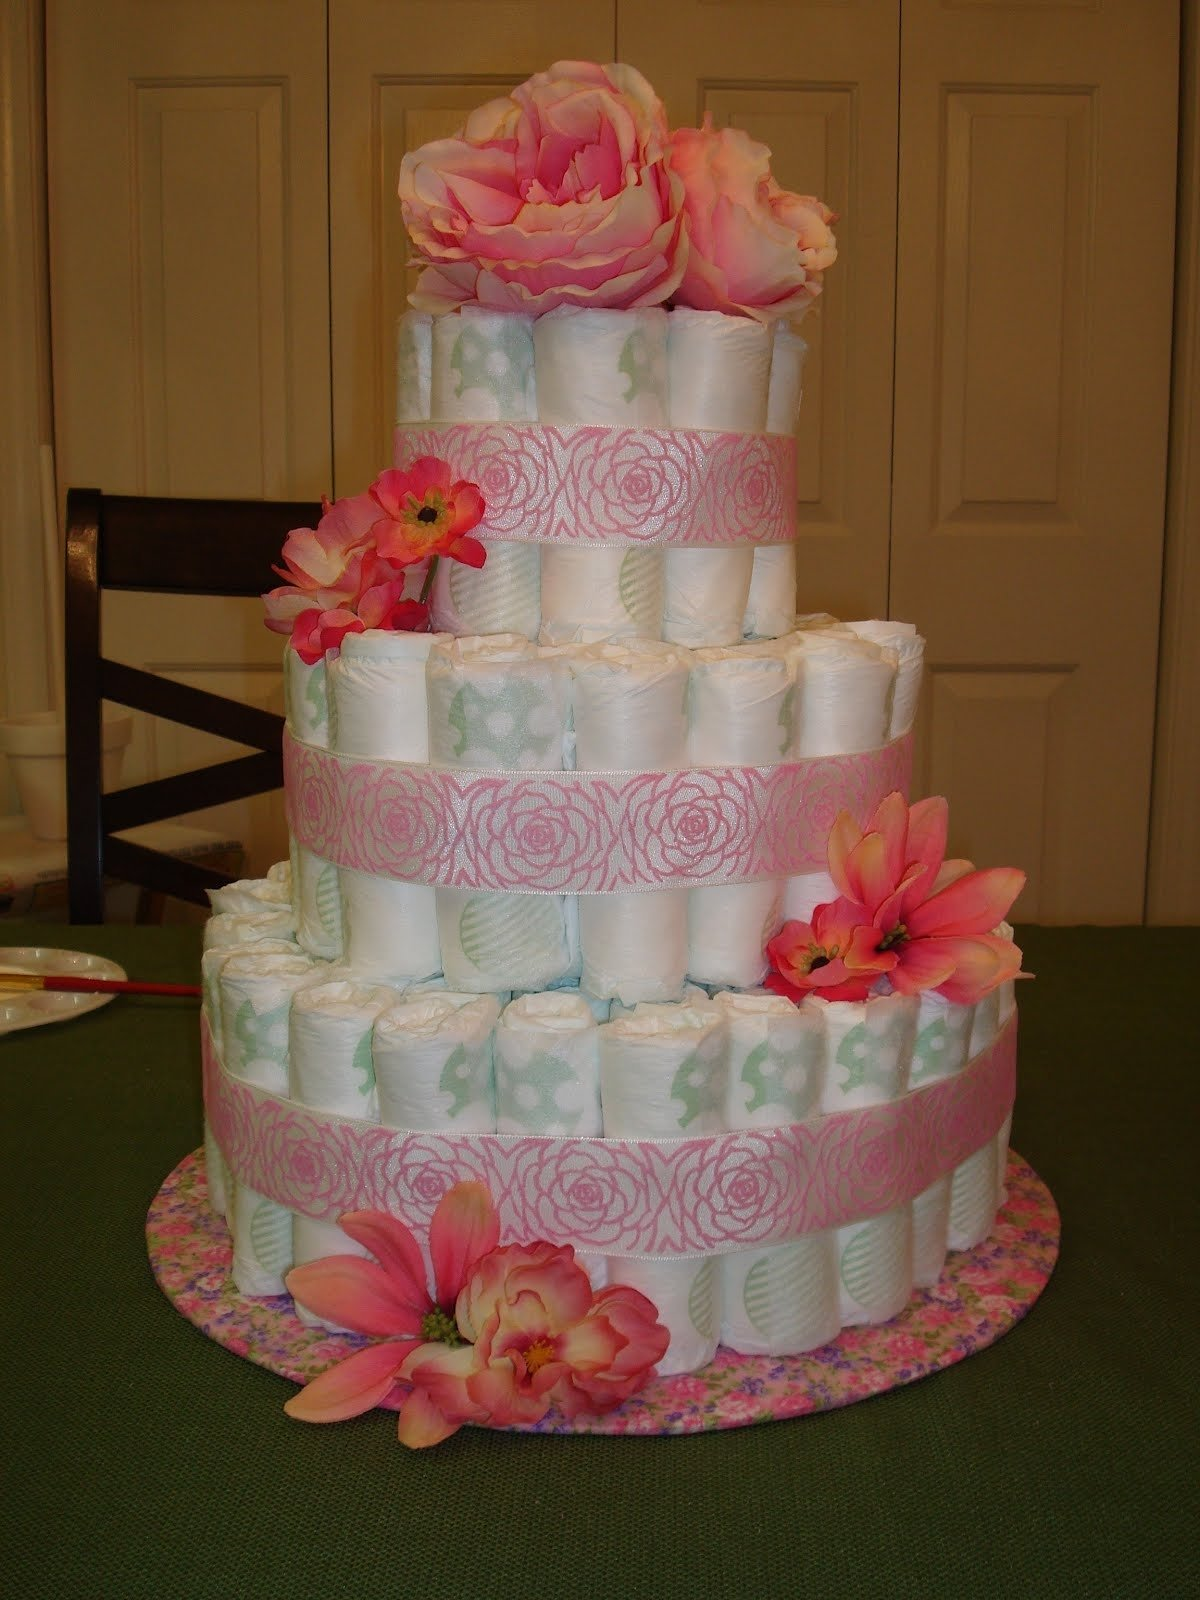 10 Awesome Diaper Cake Ideas For A Girl rare baby shower diaper cake ideas creative images girl gift nappy 2020